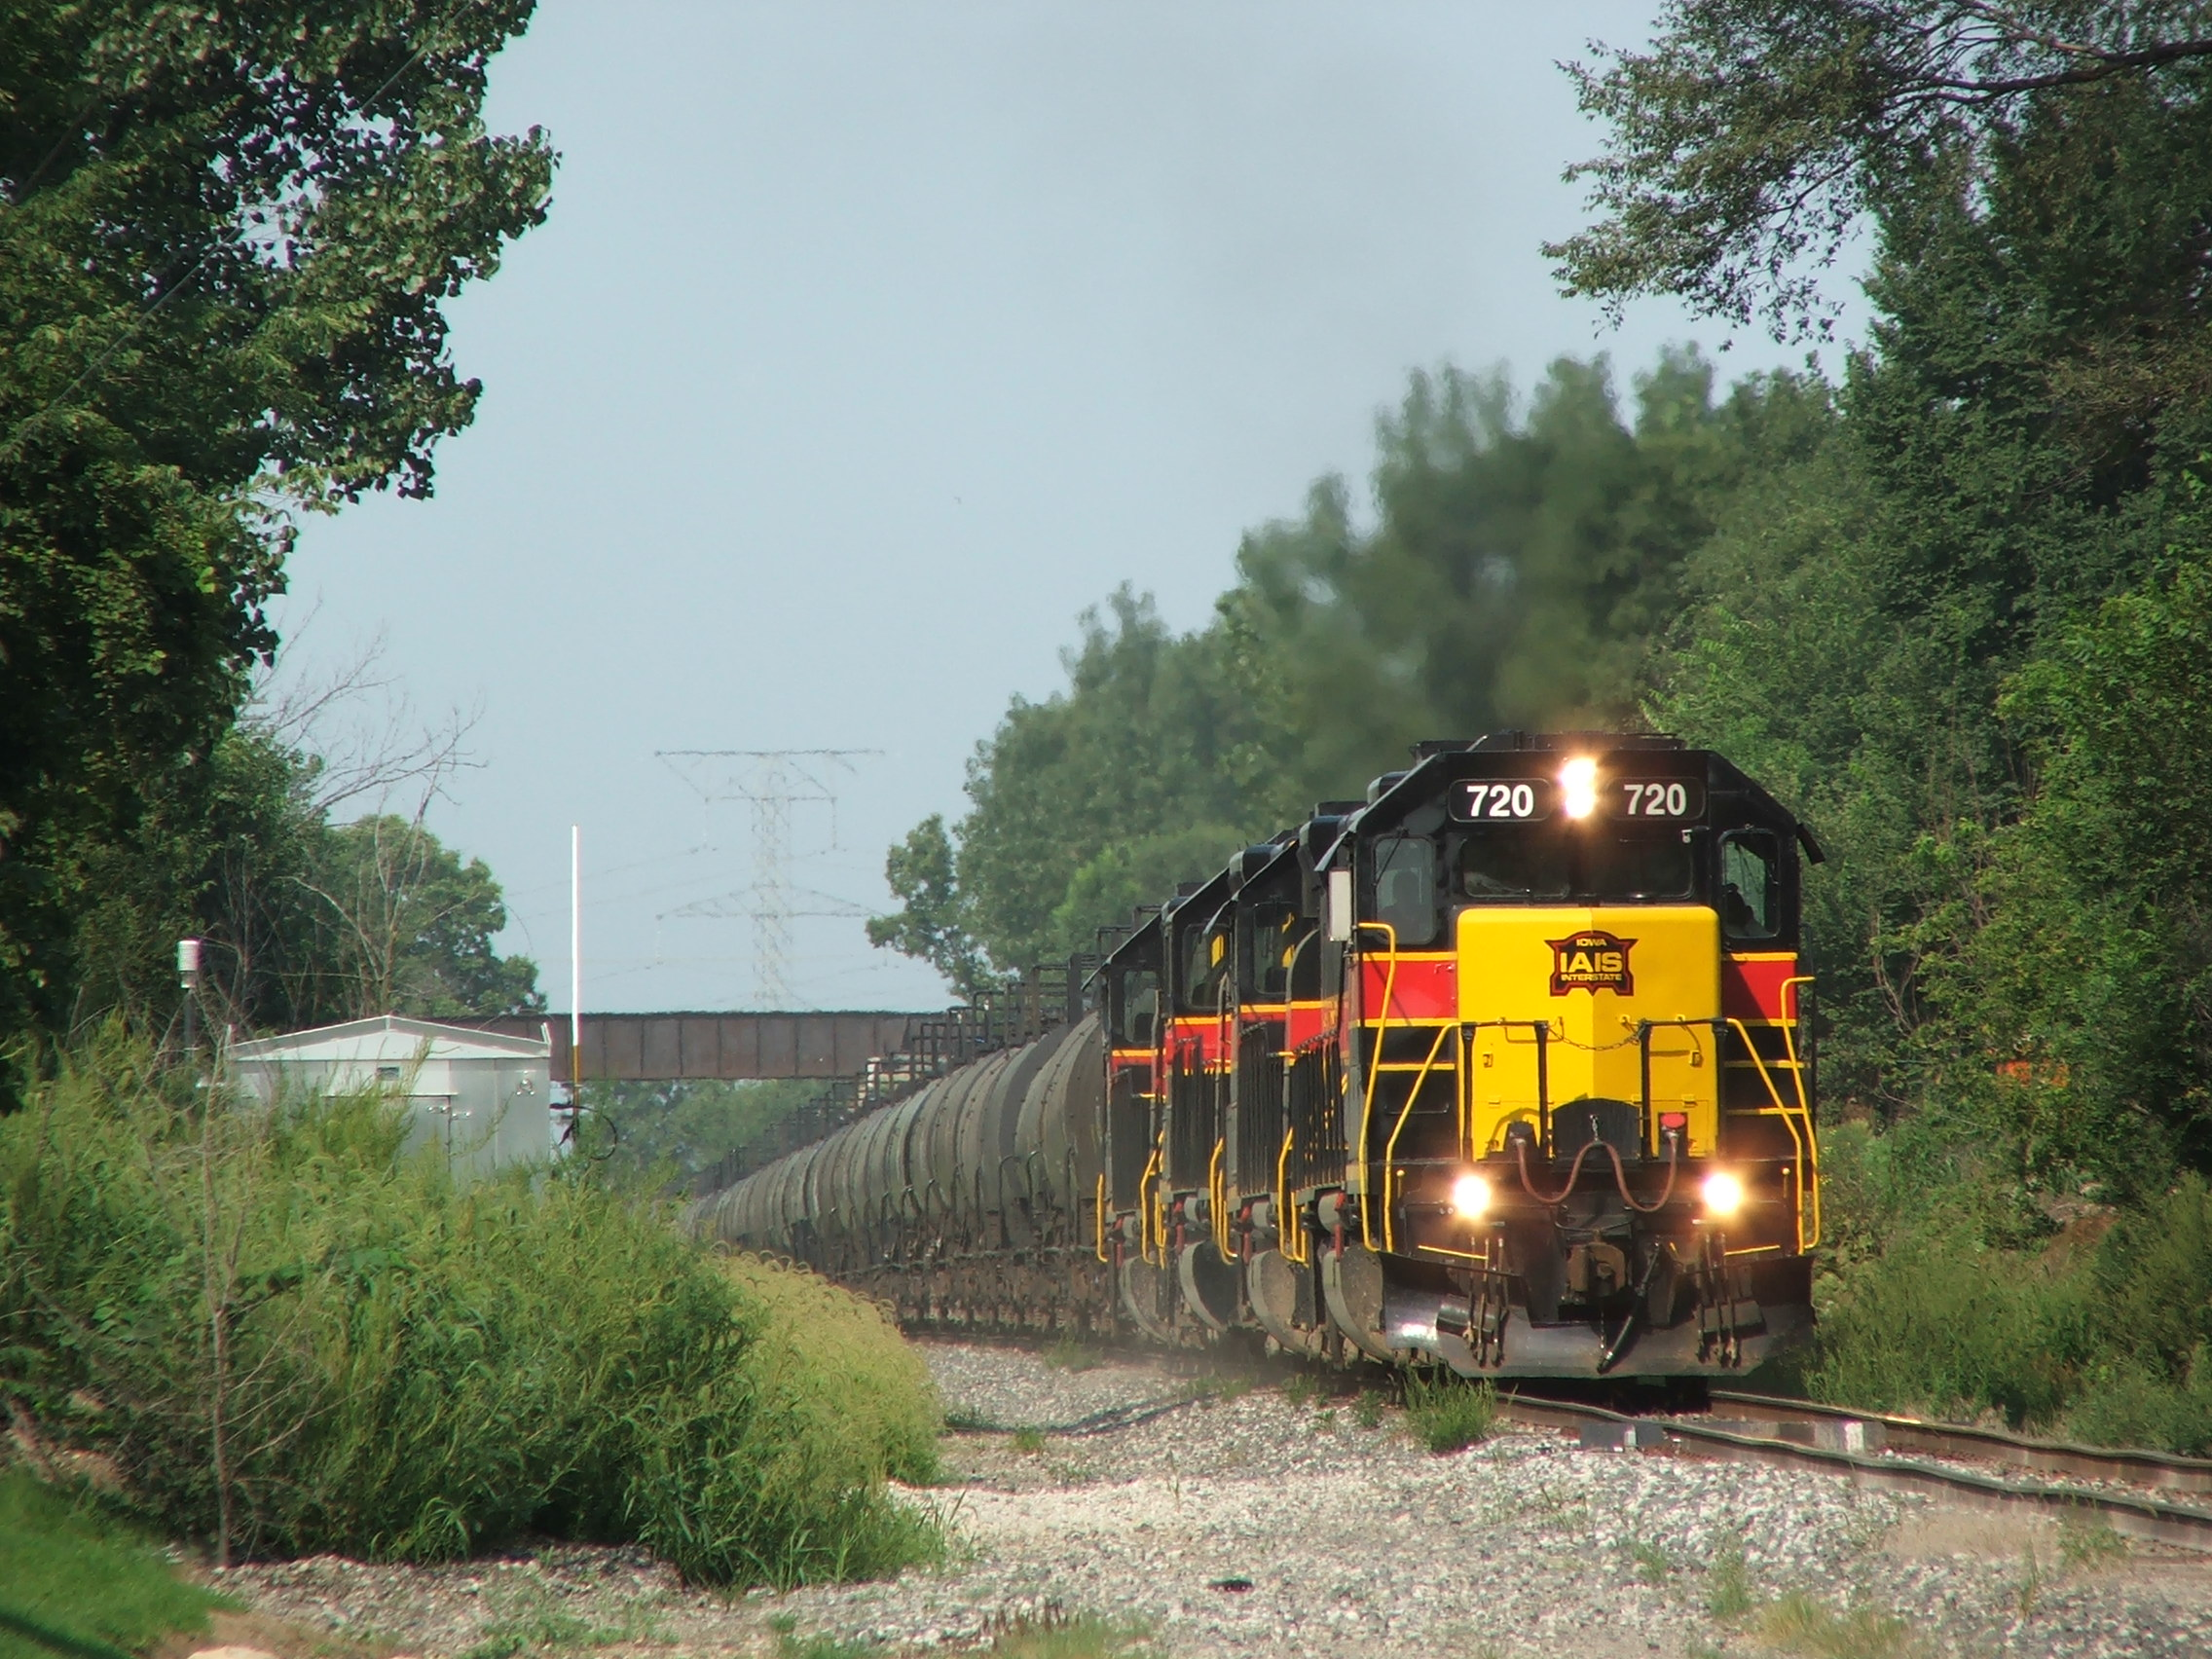 The ethanol train has reached Minooka as they duck under the EJ&E's Illinois River Line.